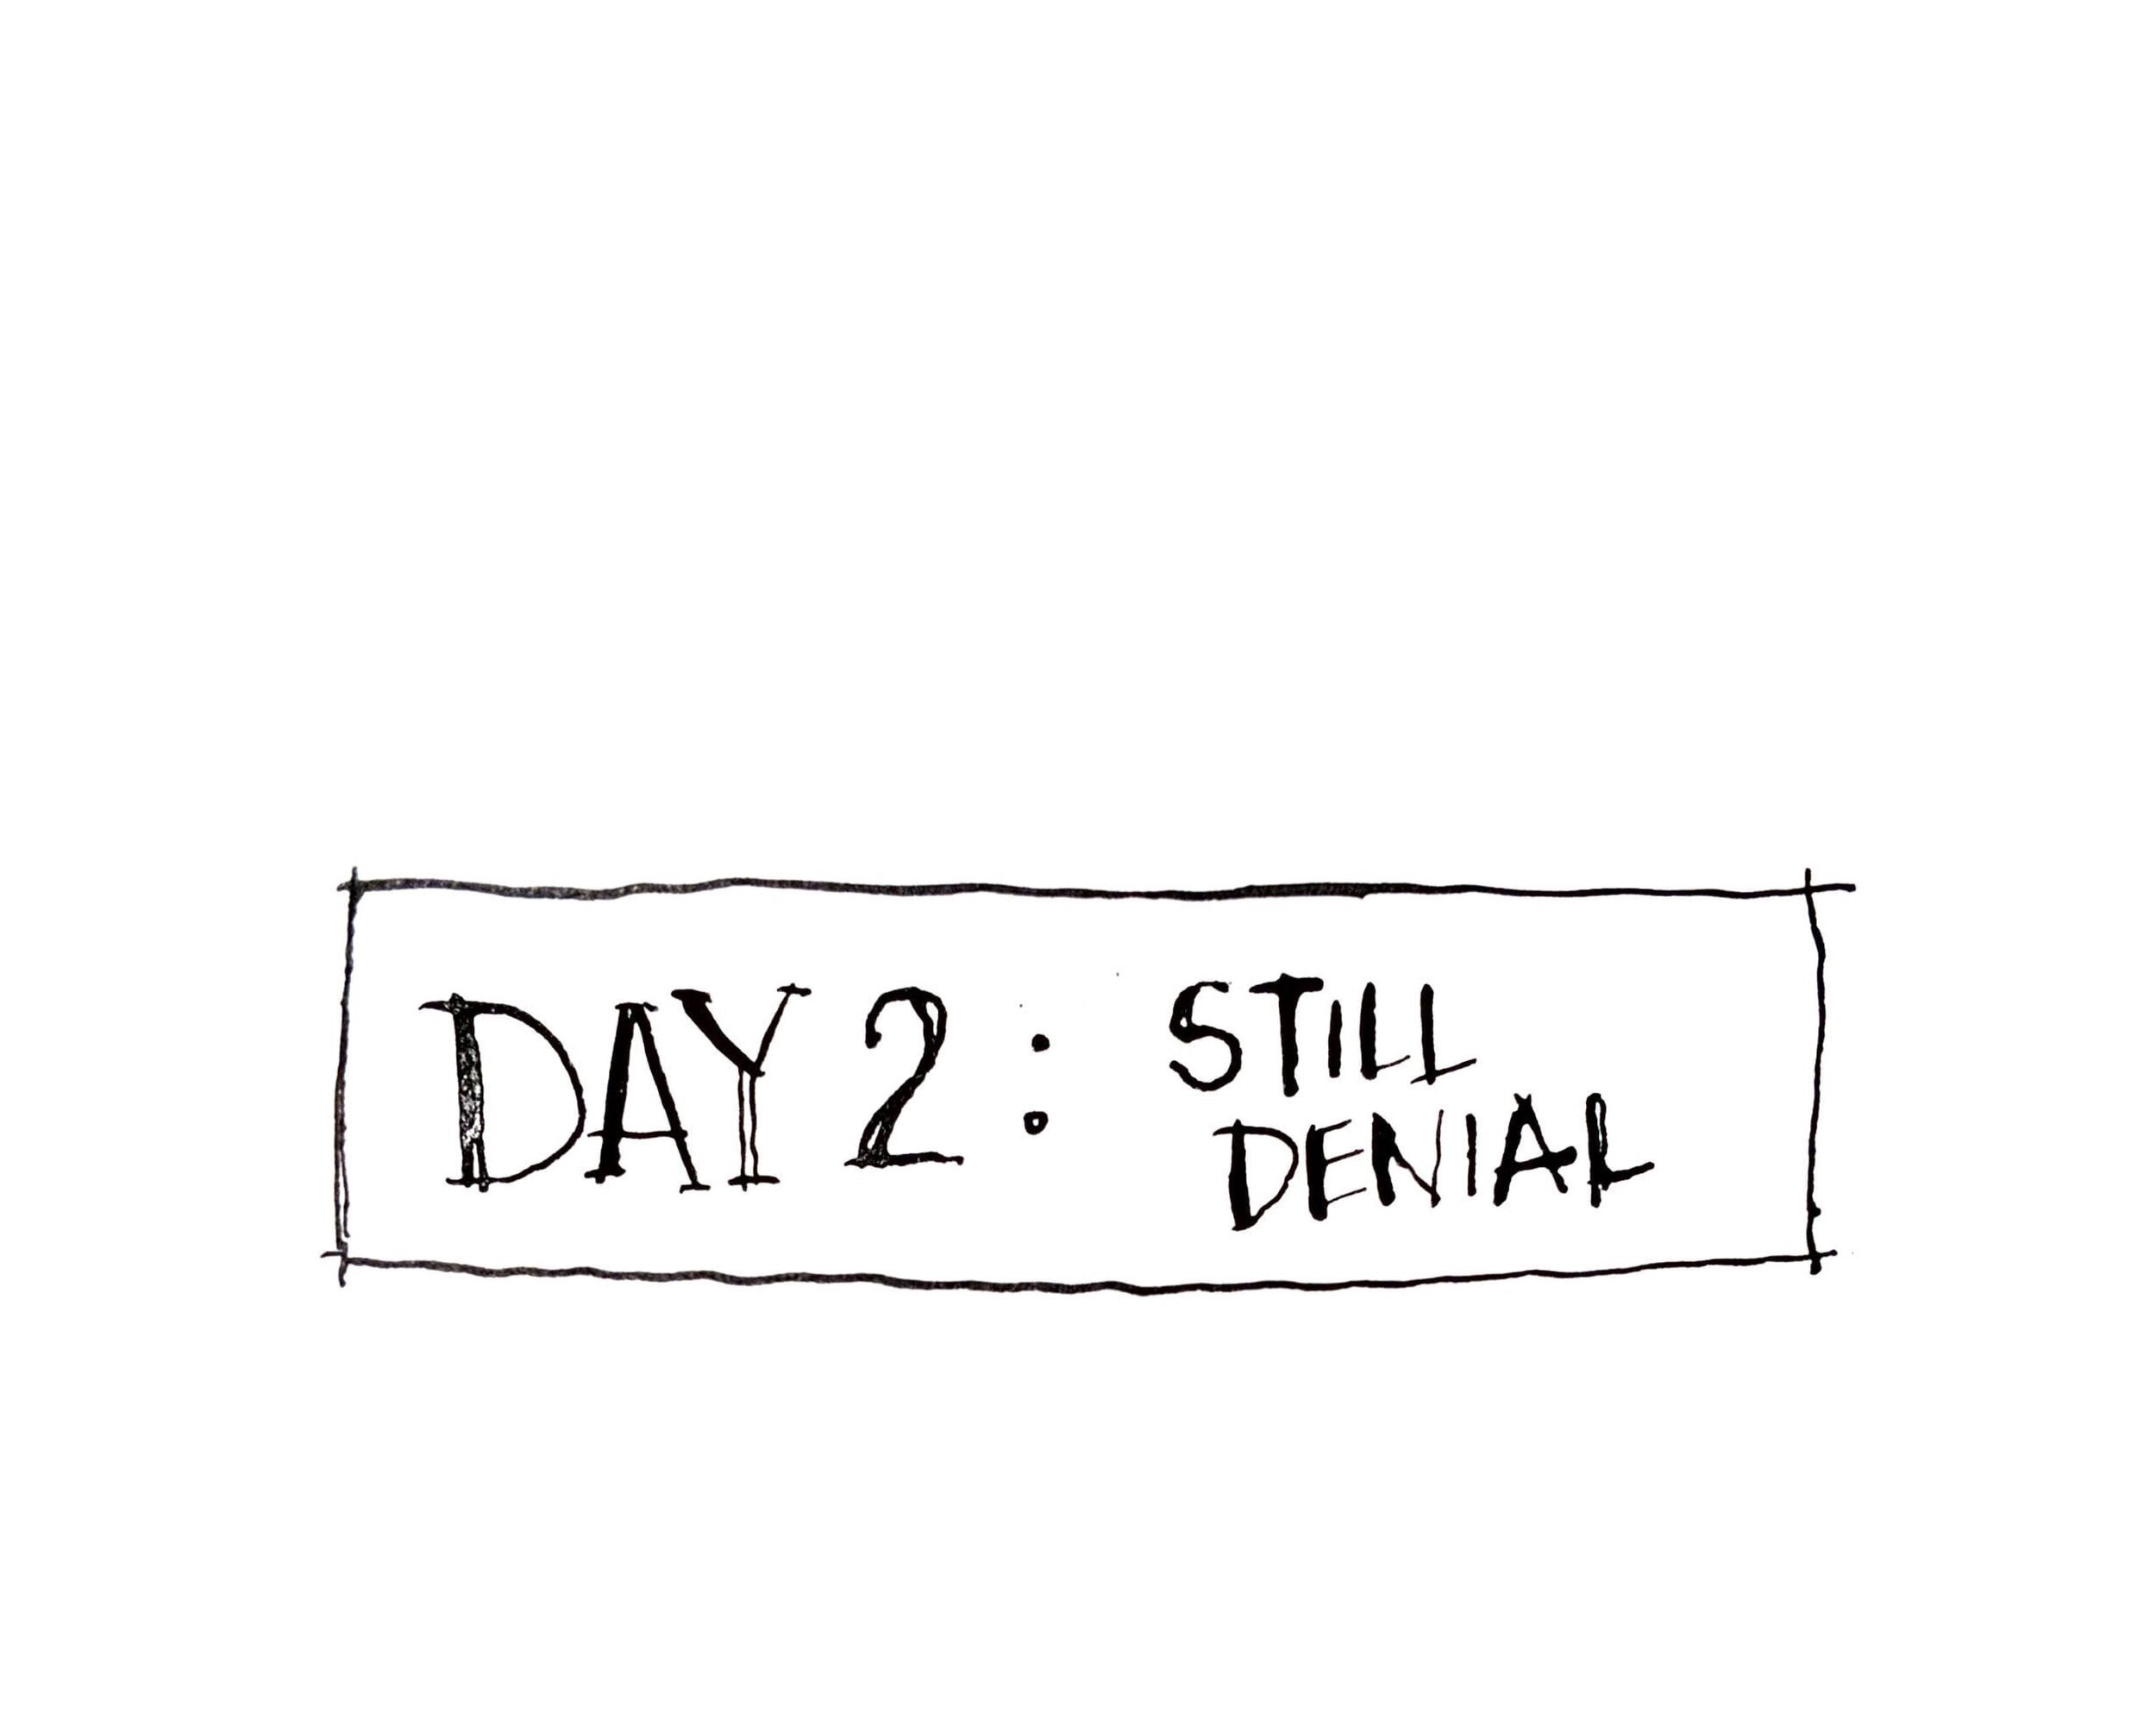 DAY 2: Still Denial